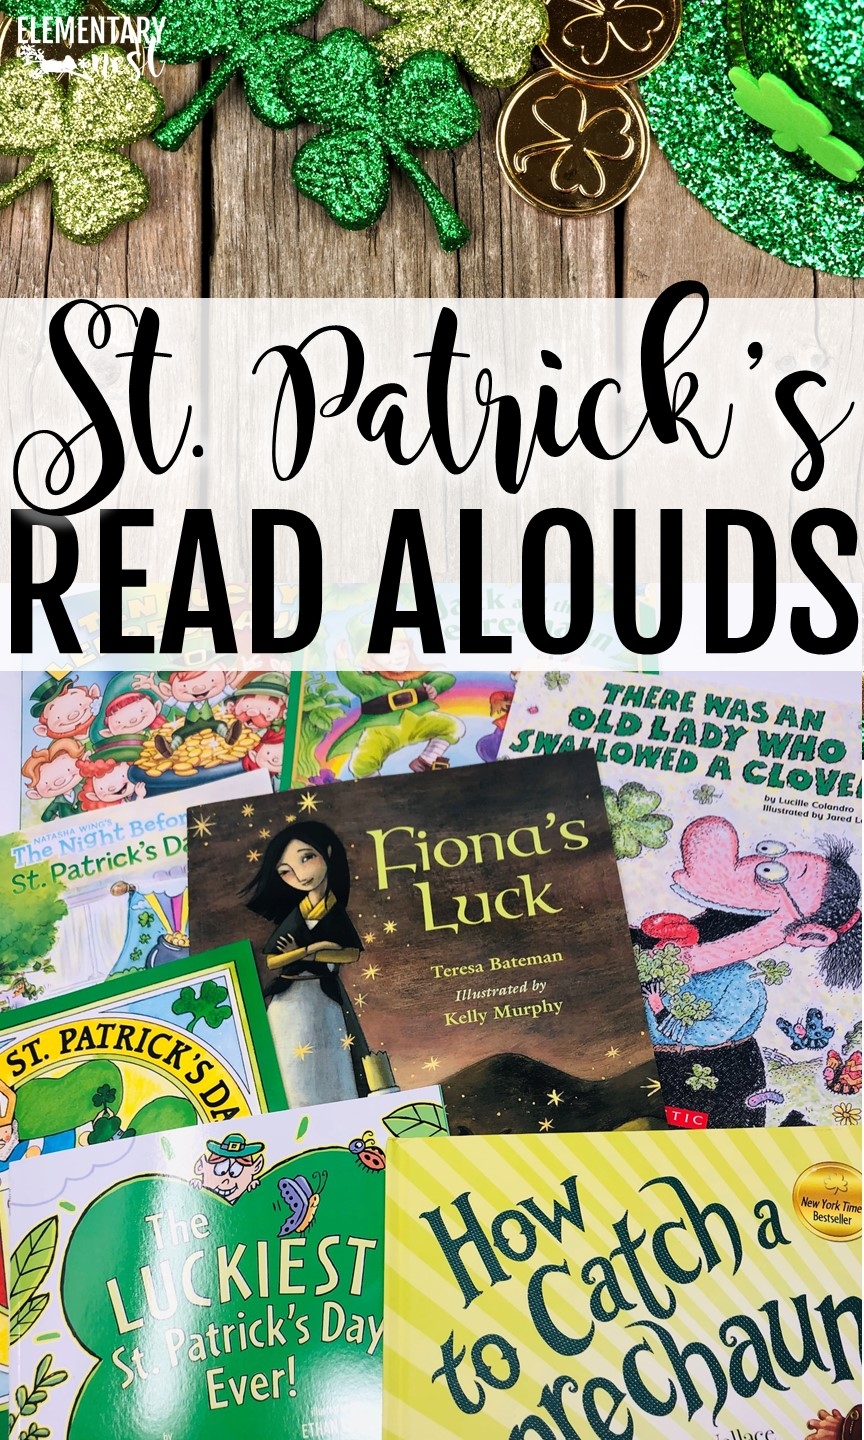 Read Alouds and stories for elementary teachers.